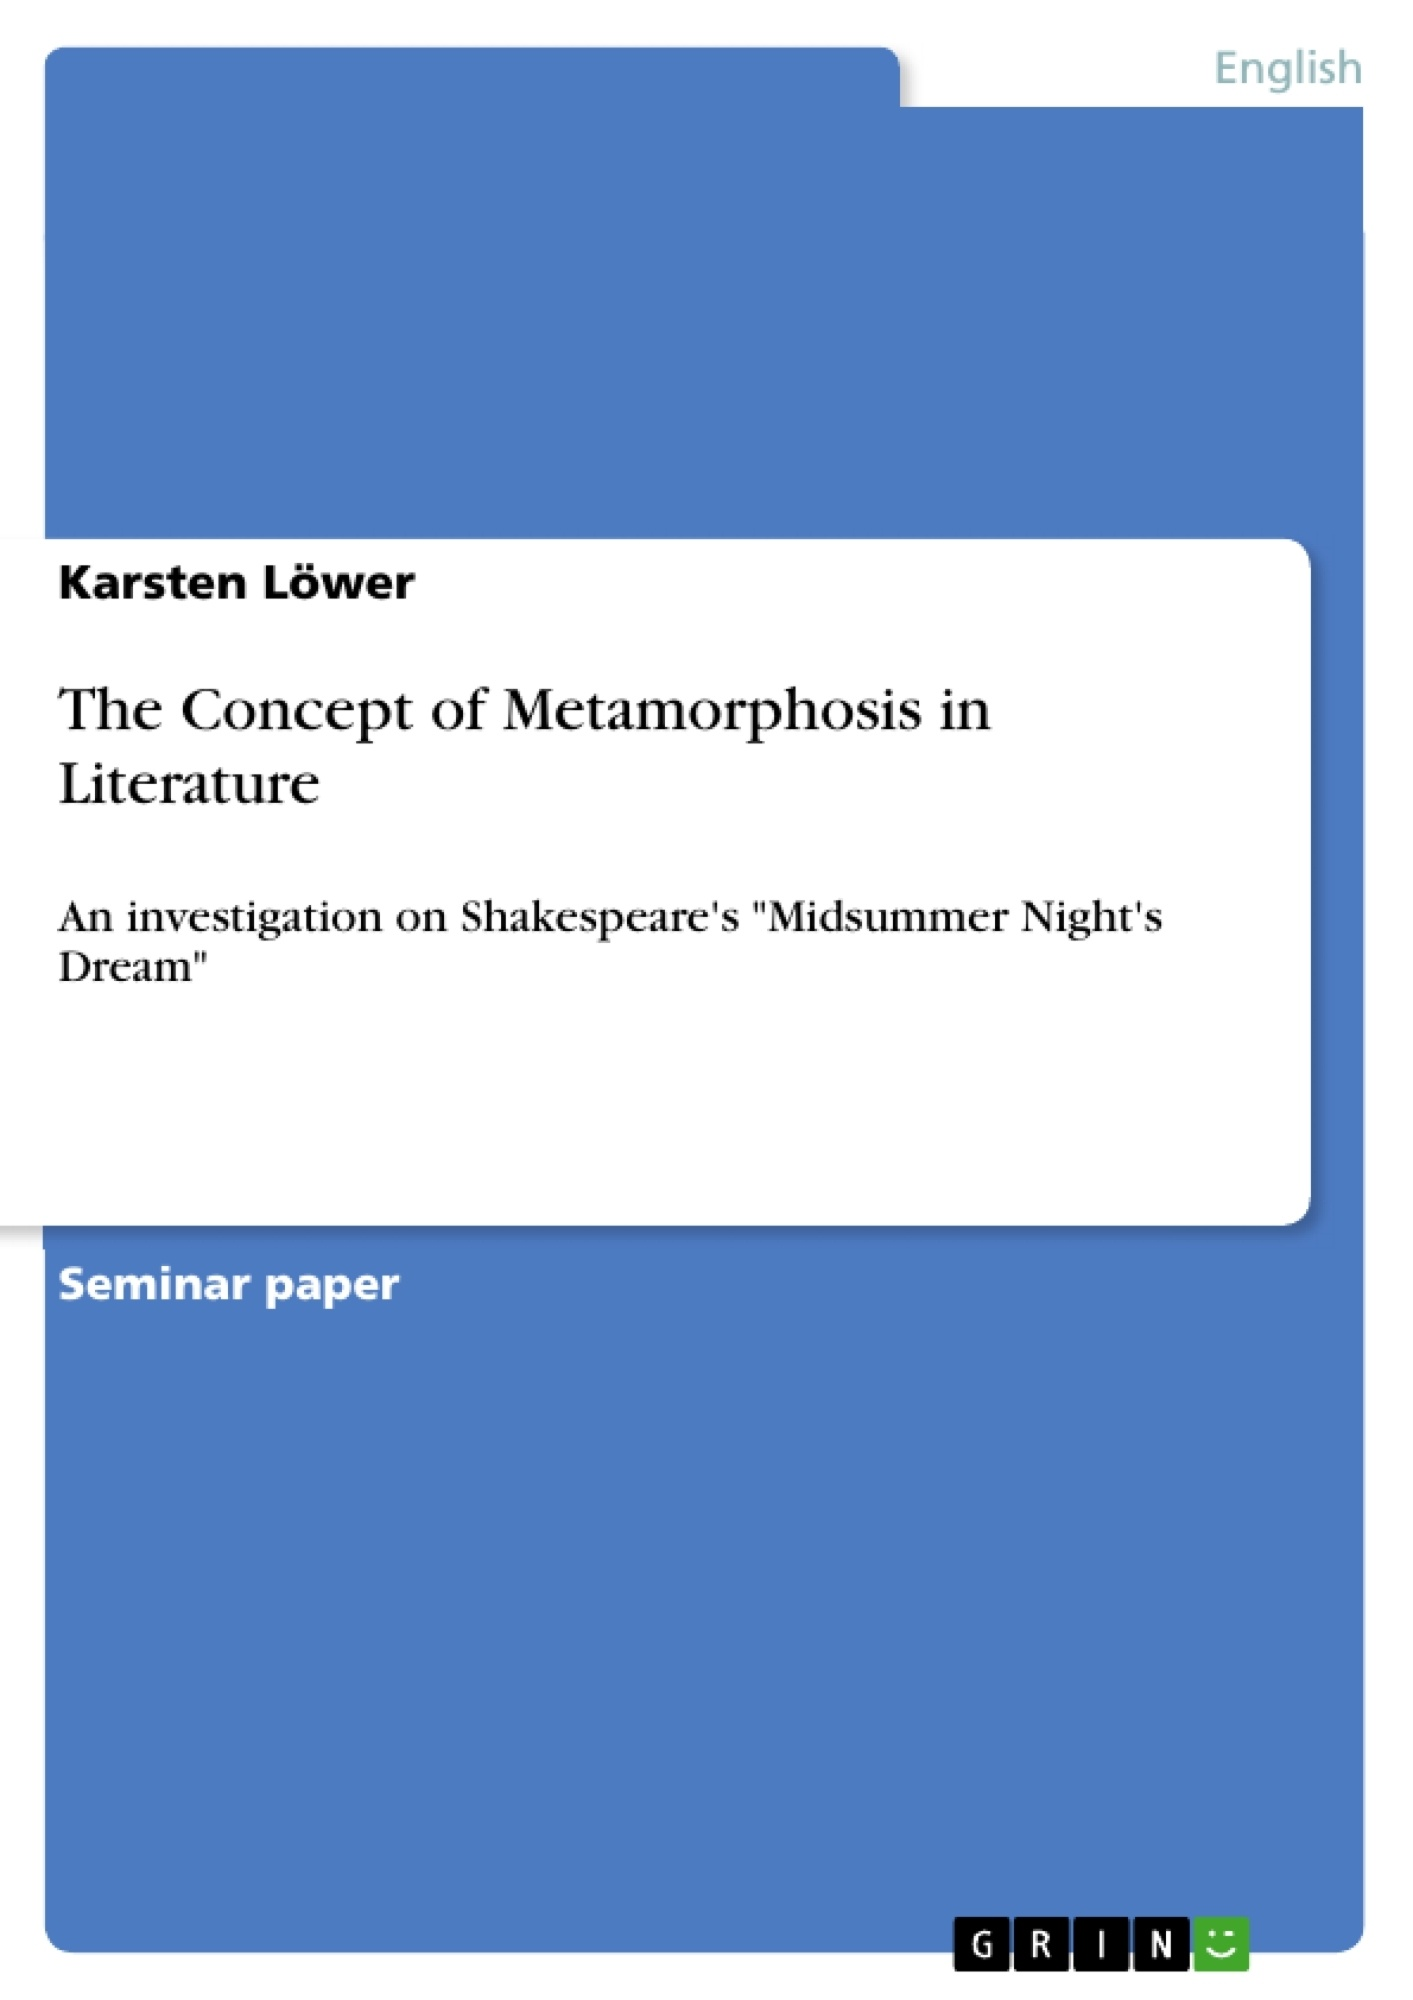 metamorphosis essays the metamorphosis thesis essays on academic  the concept of metamorphosis in literature publish your master s upload your own papers earn money thought time management essays